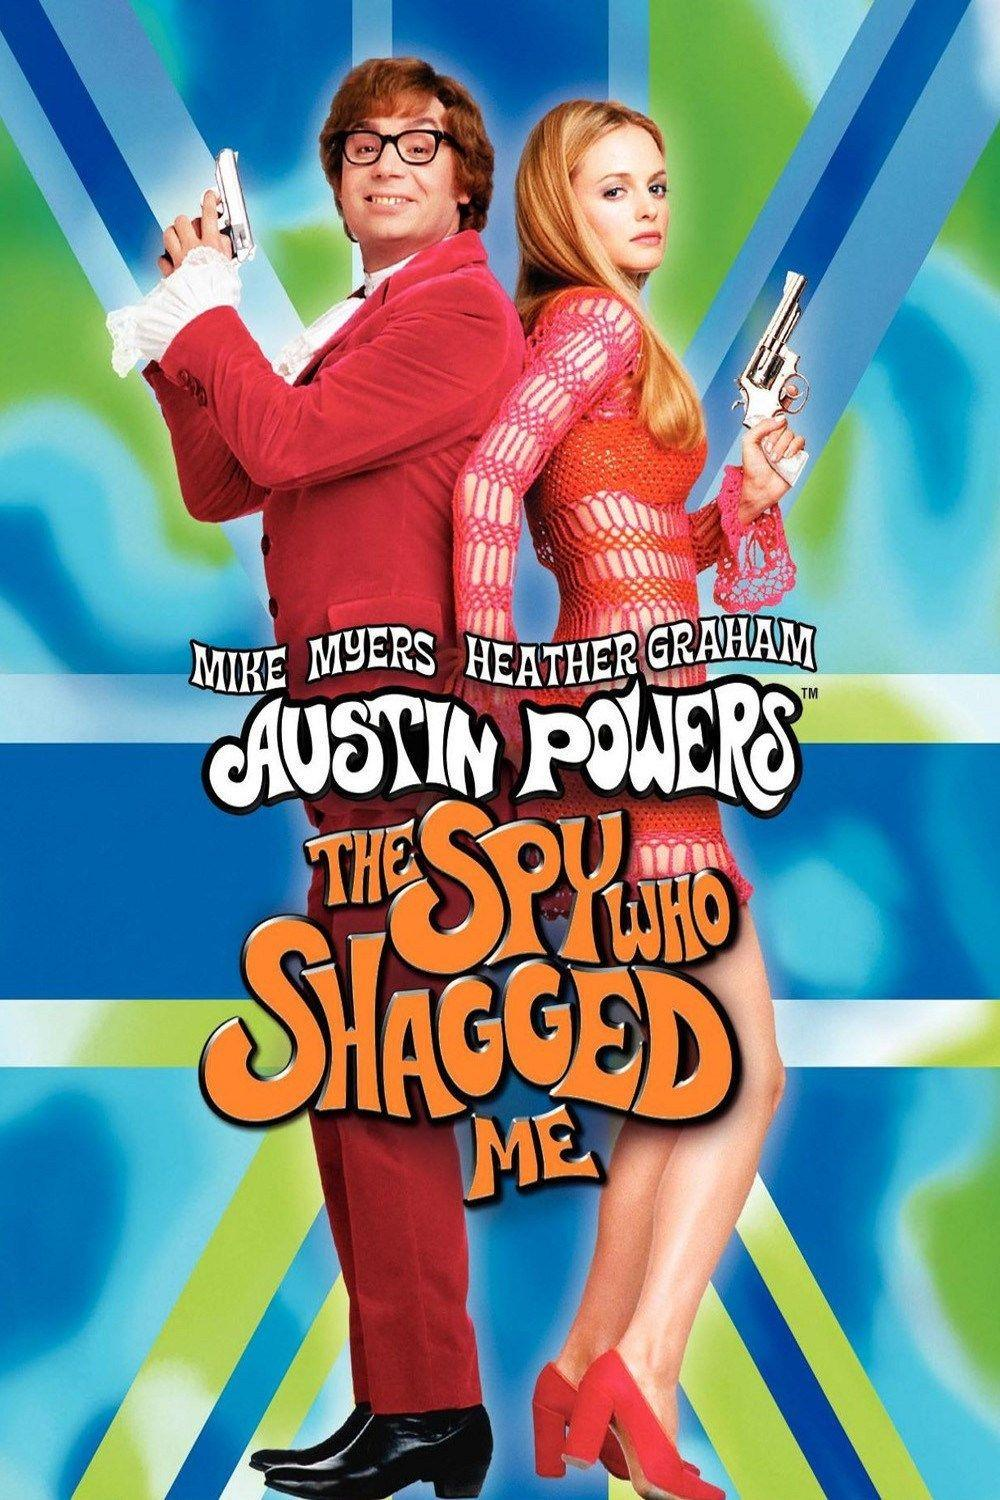 Austin Powers: The Spy Who Shagged Me wallpapers, Movie, HQ Austin